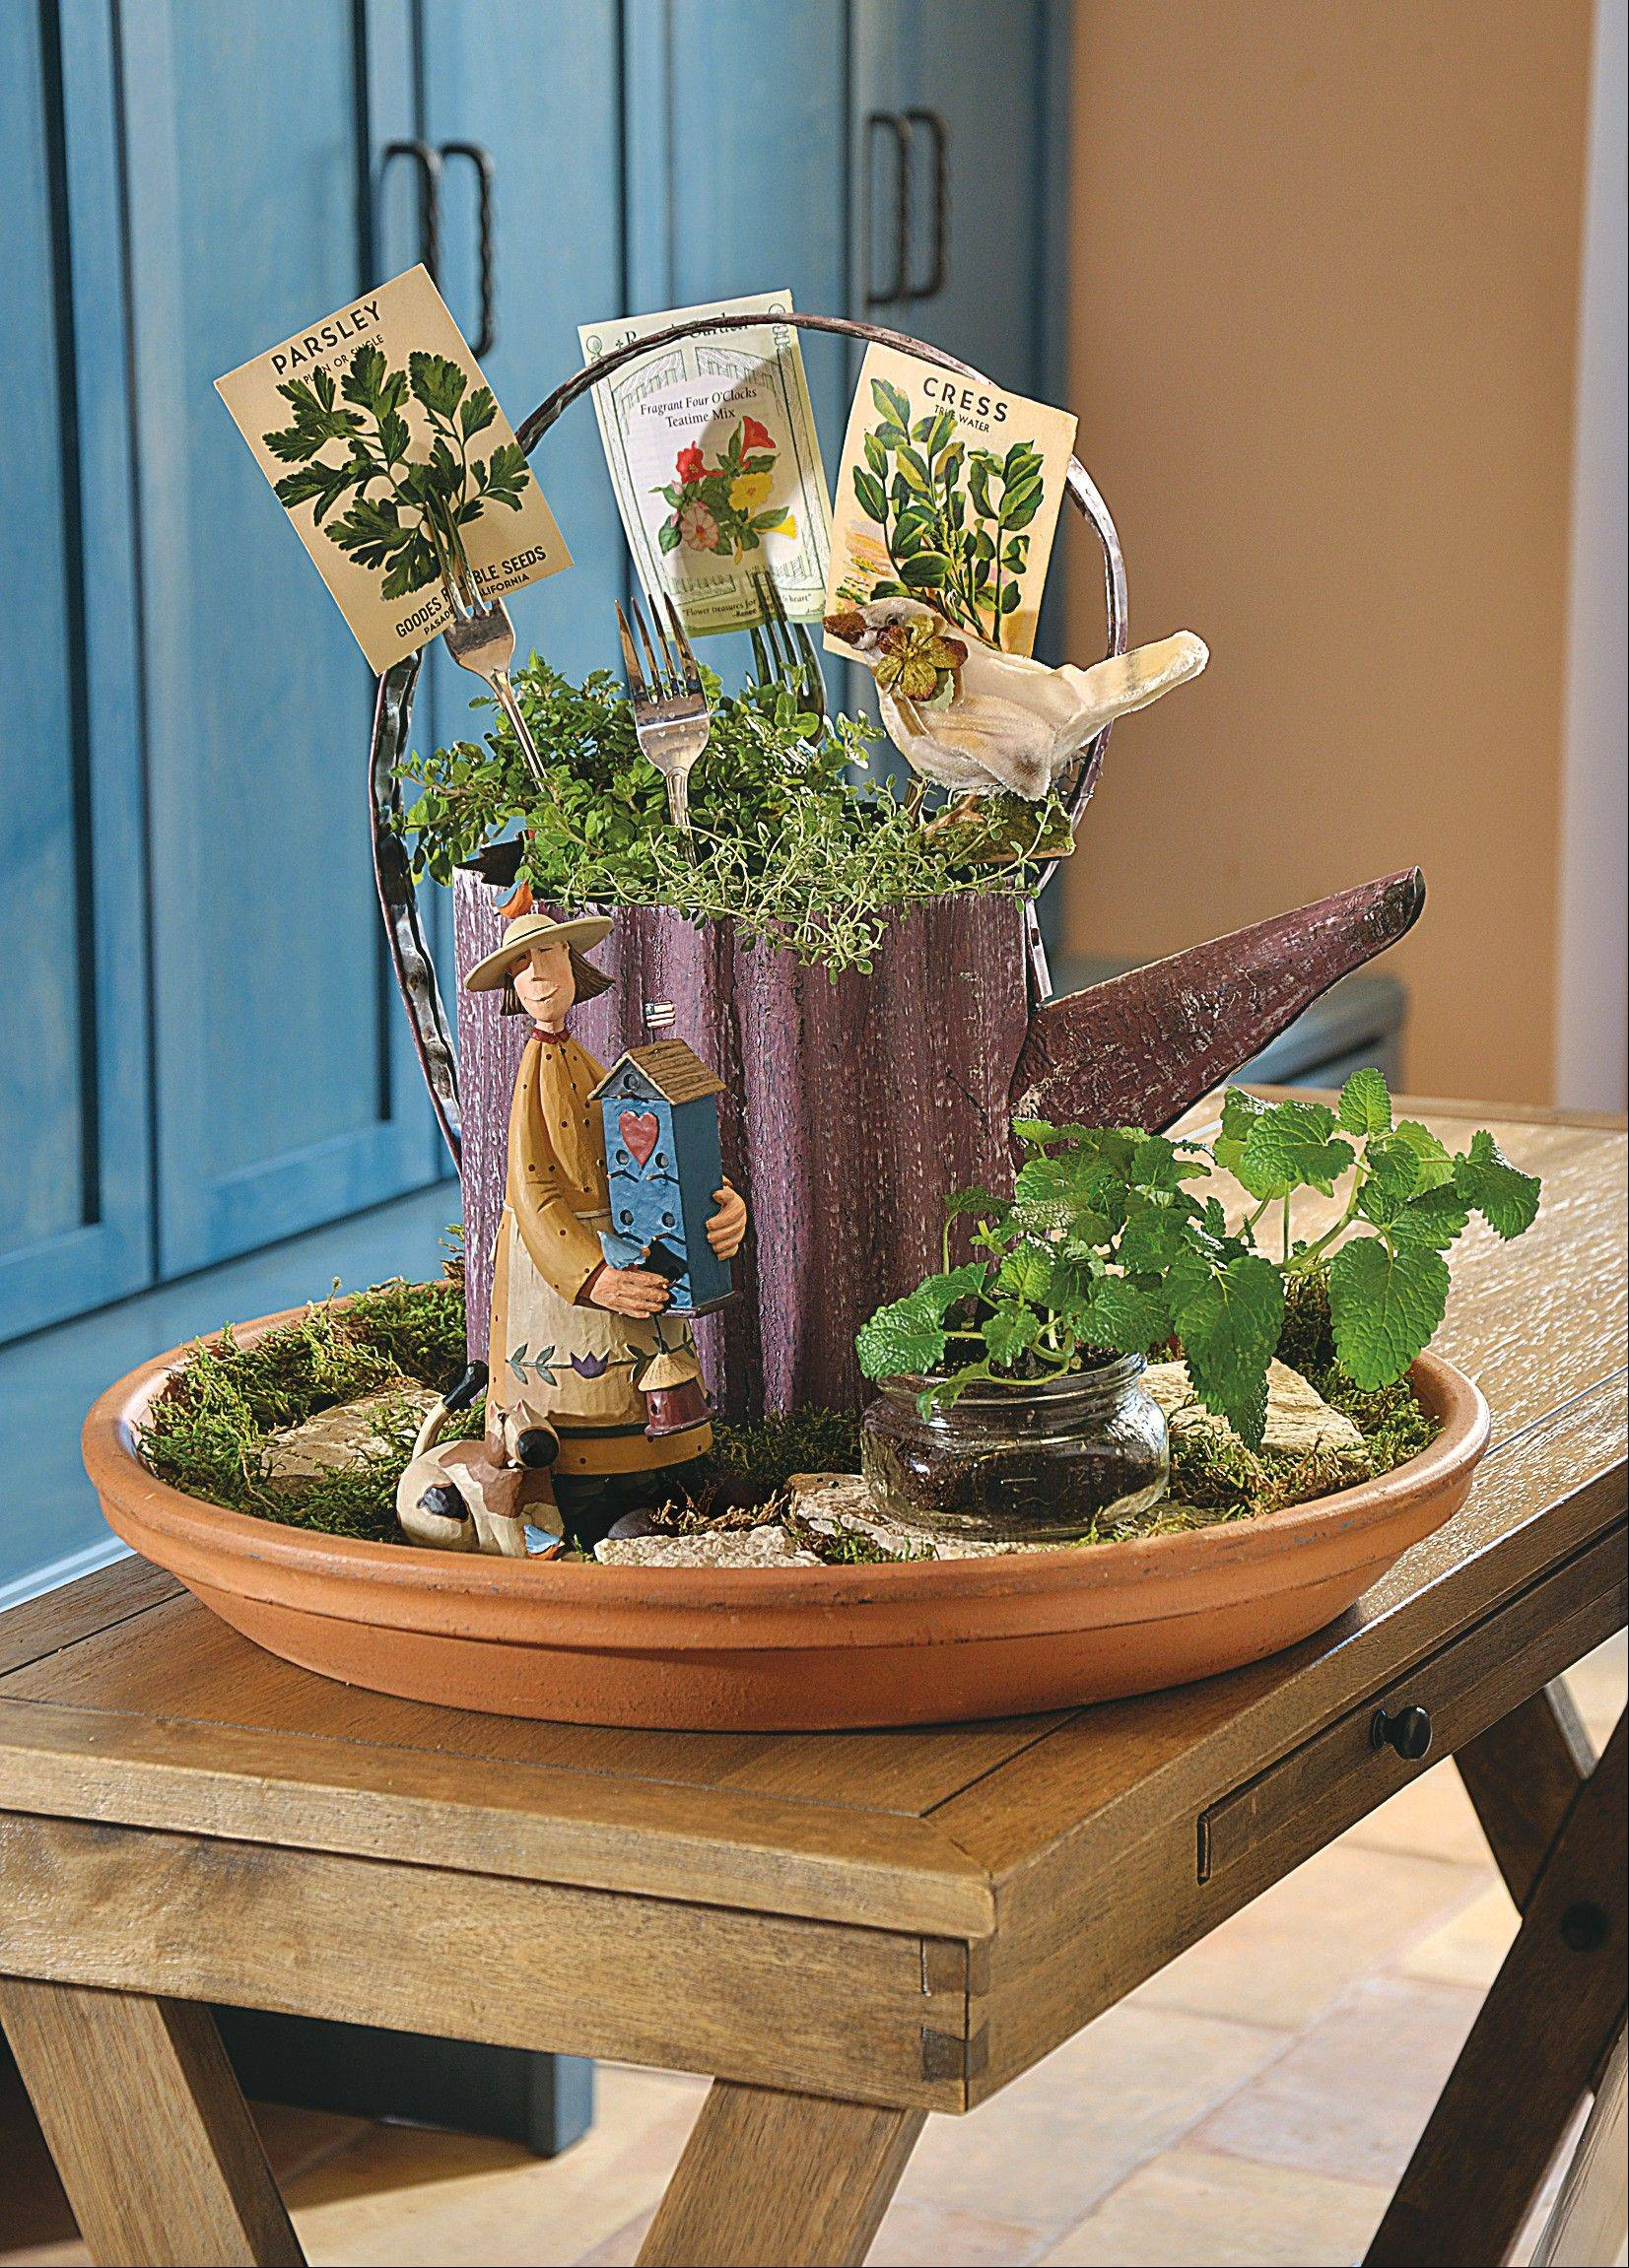 An accent table with a little bit of personality. This a garden-themed grouping features some seed packets woven through fork tines.